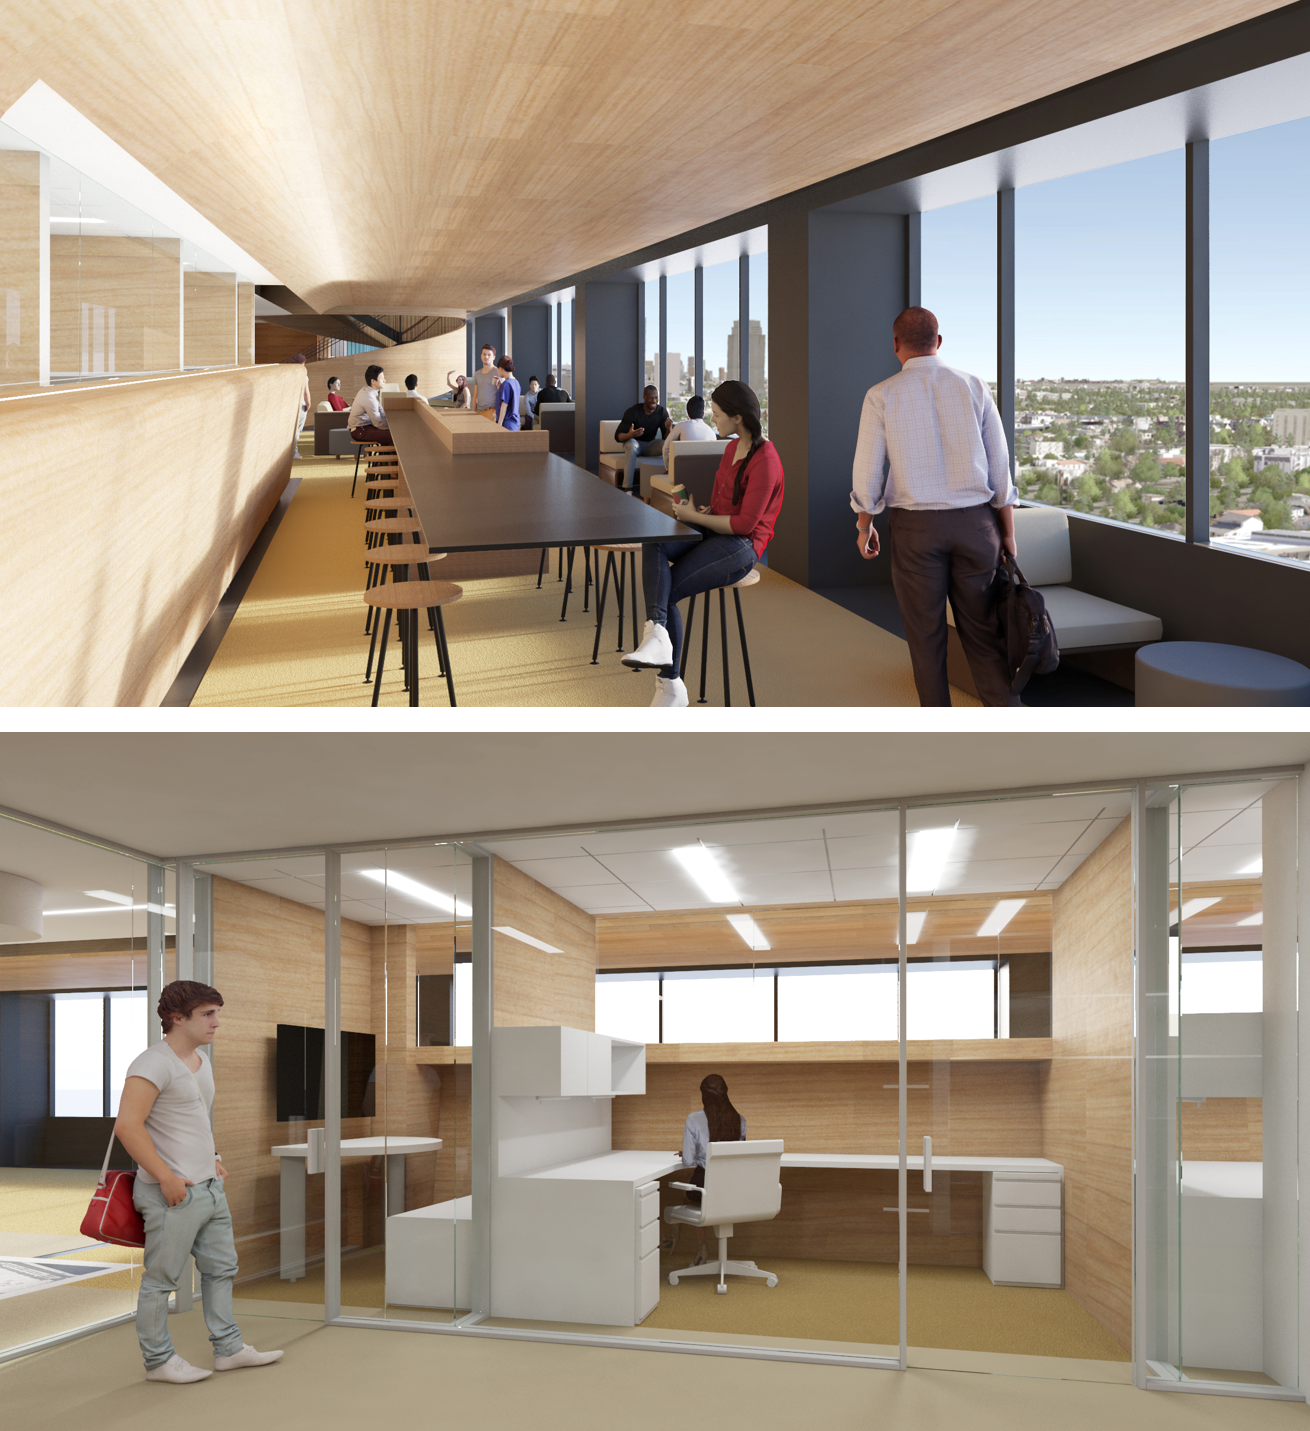 UCLA UNIVERSITY EXTENSION ADMINISTRATION HEADQUARTERS By placing private offices in-board, open collaborative work space out-board all occupants are afforded daylight and views.